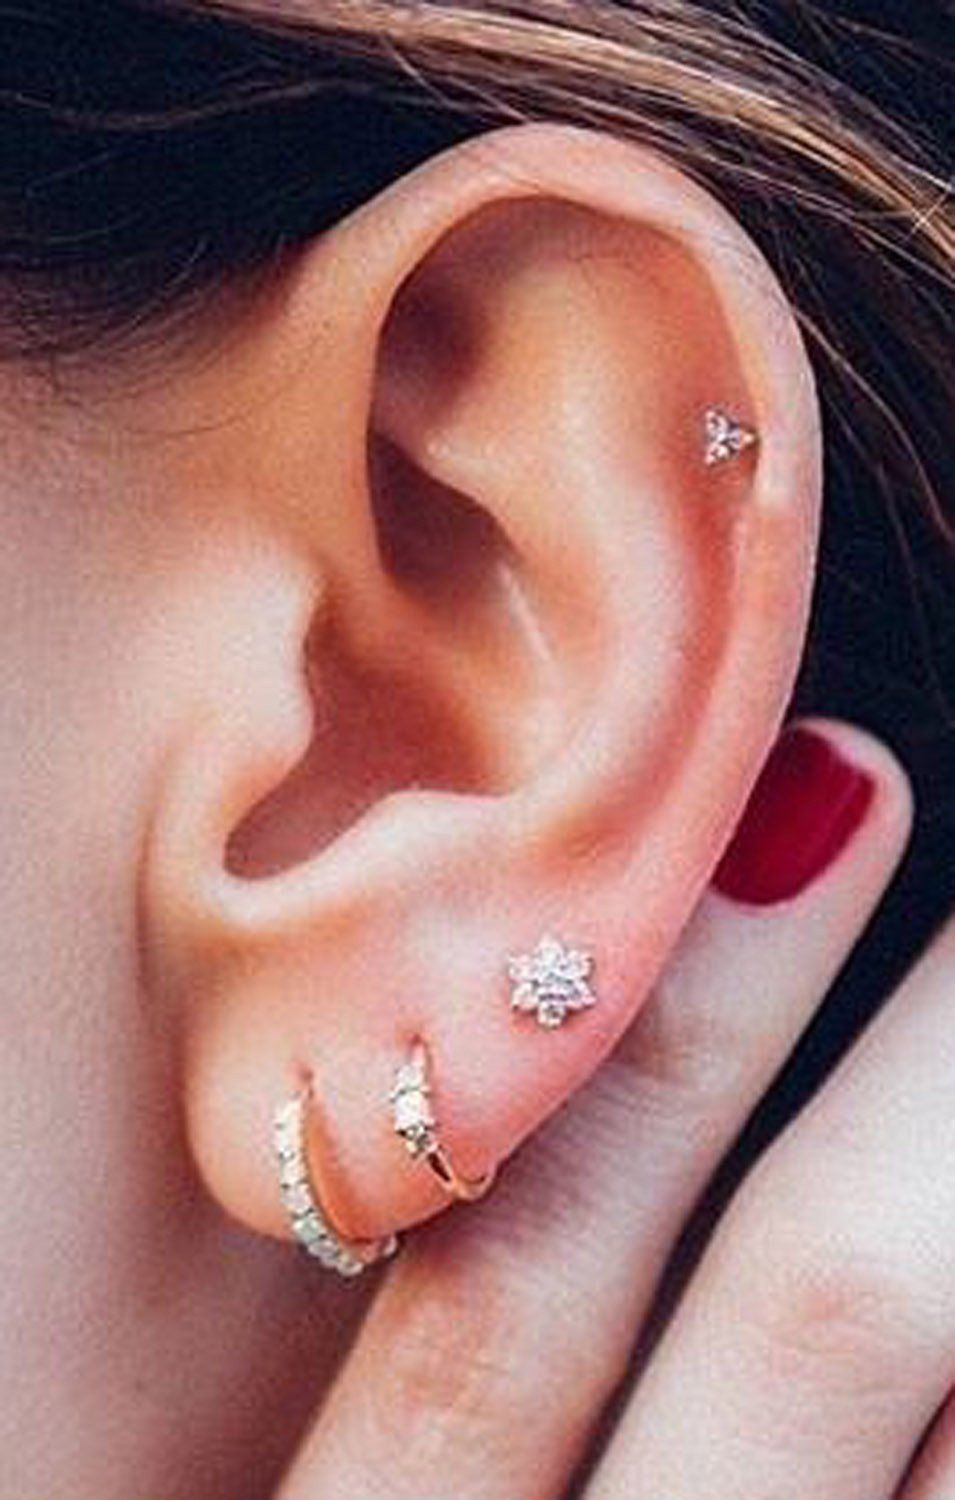 Cartilage piercing ideas  Steal These  Ear Piercing Ideas  Cartilage piercing stud